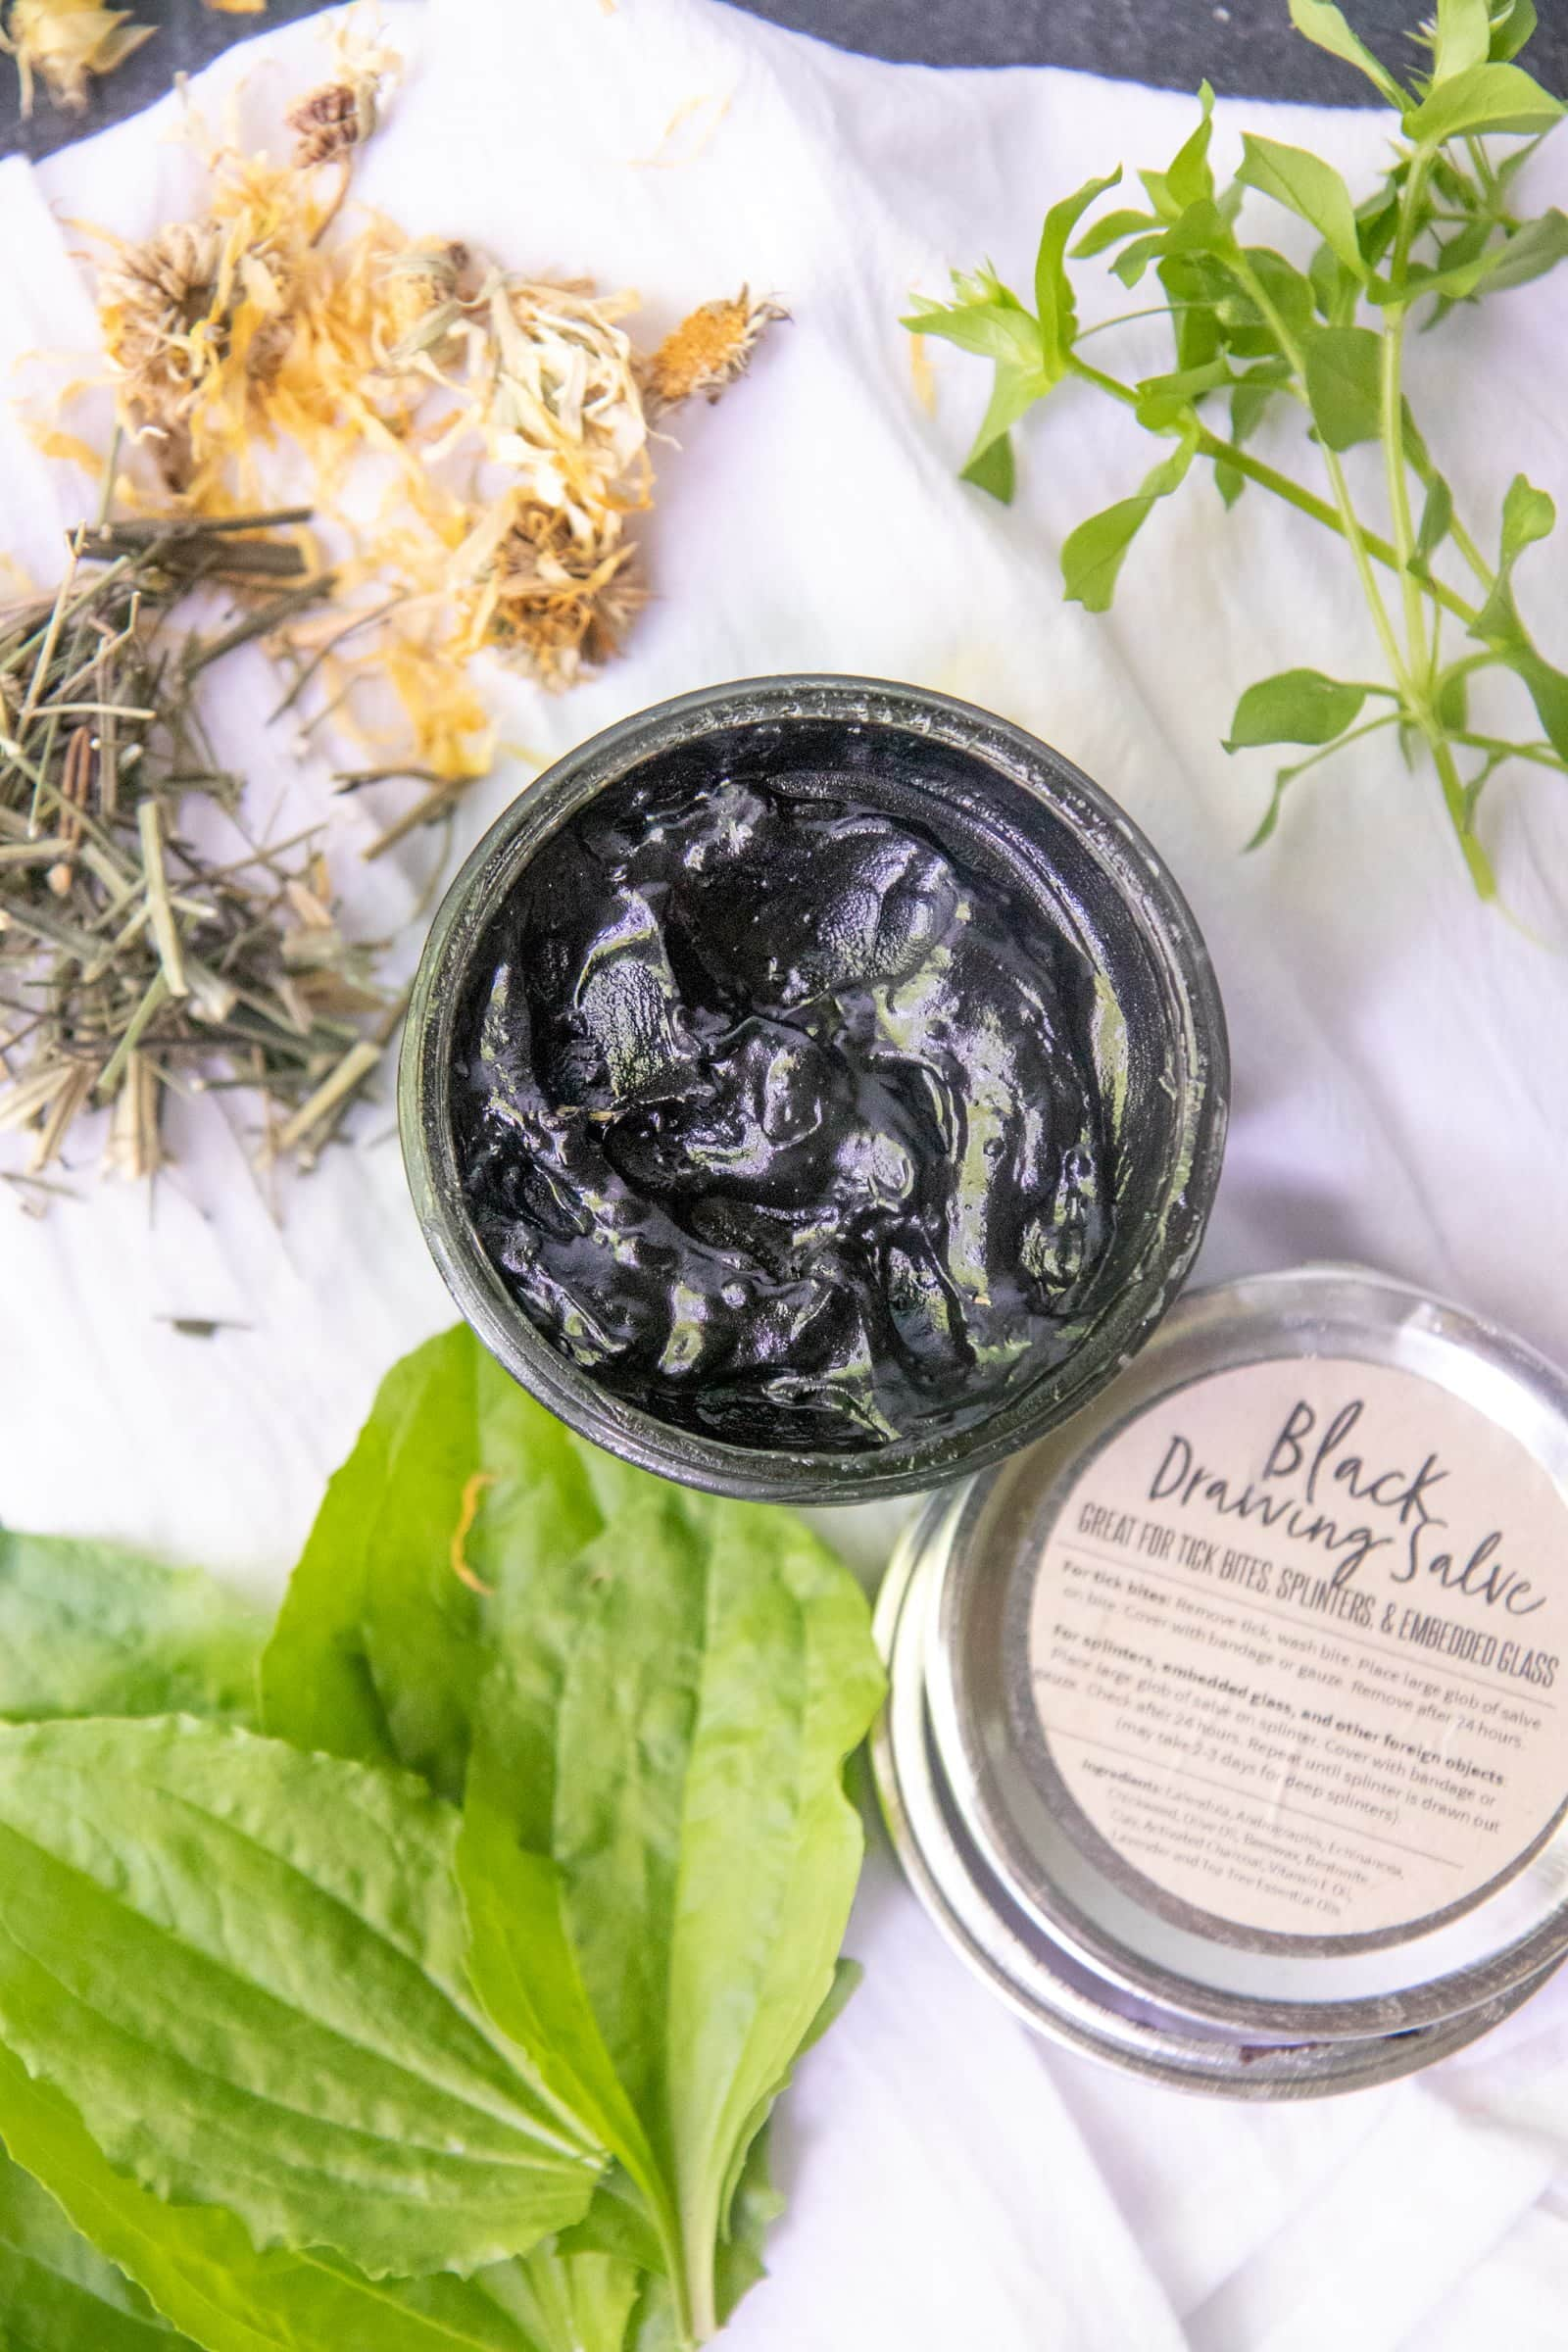 An open glass jar of black drawing salve with herbs surrounding it, and a labeled lid next to it.